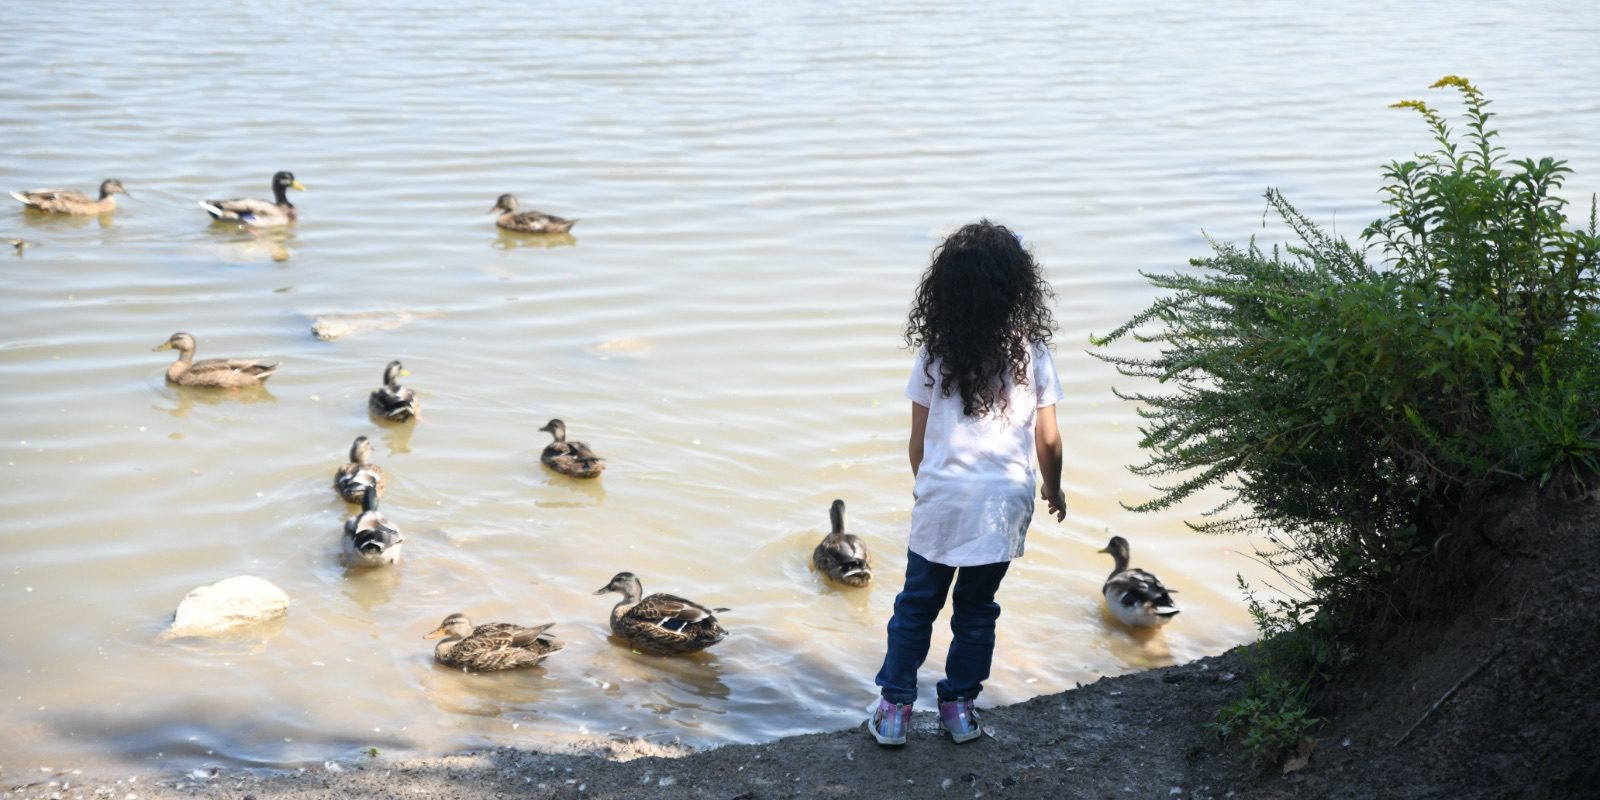 A child watches ducks swim in a pond in Waterfall Park in Independence, MO